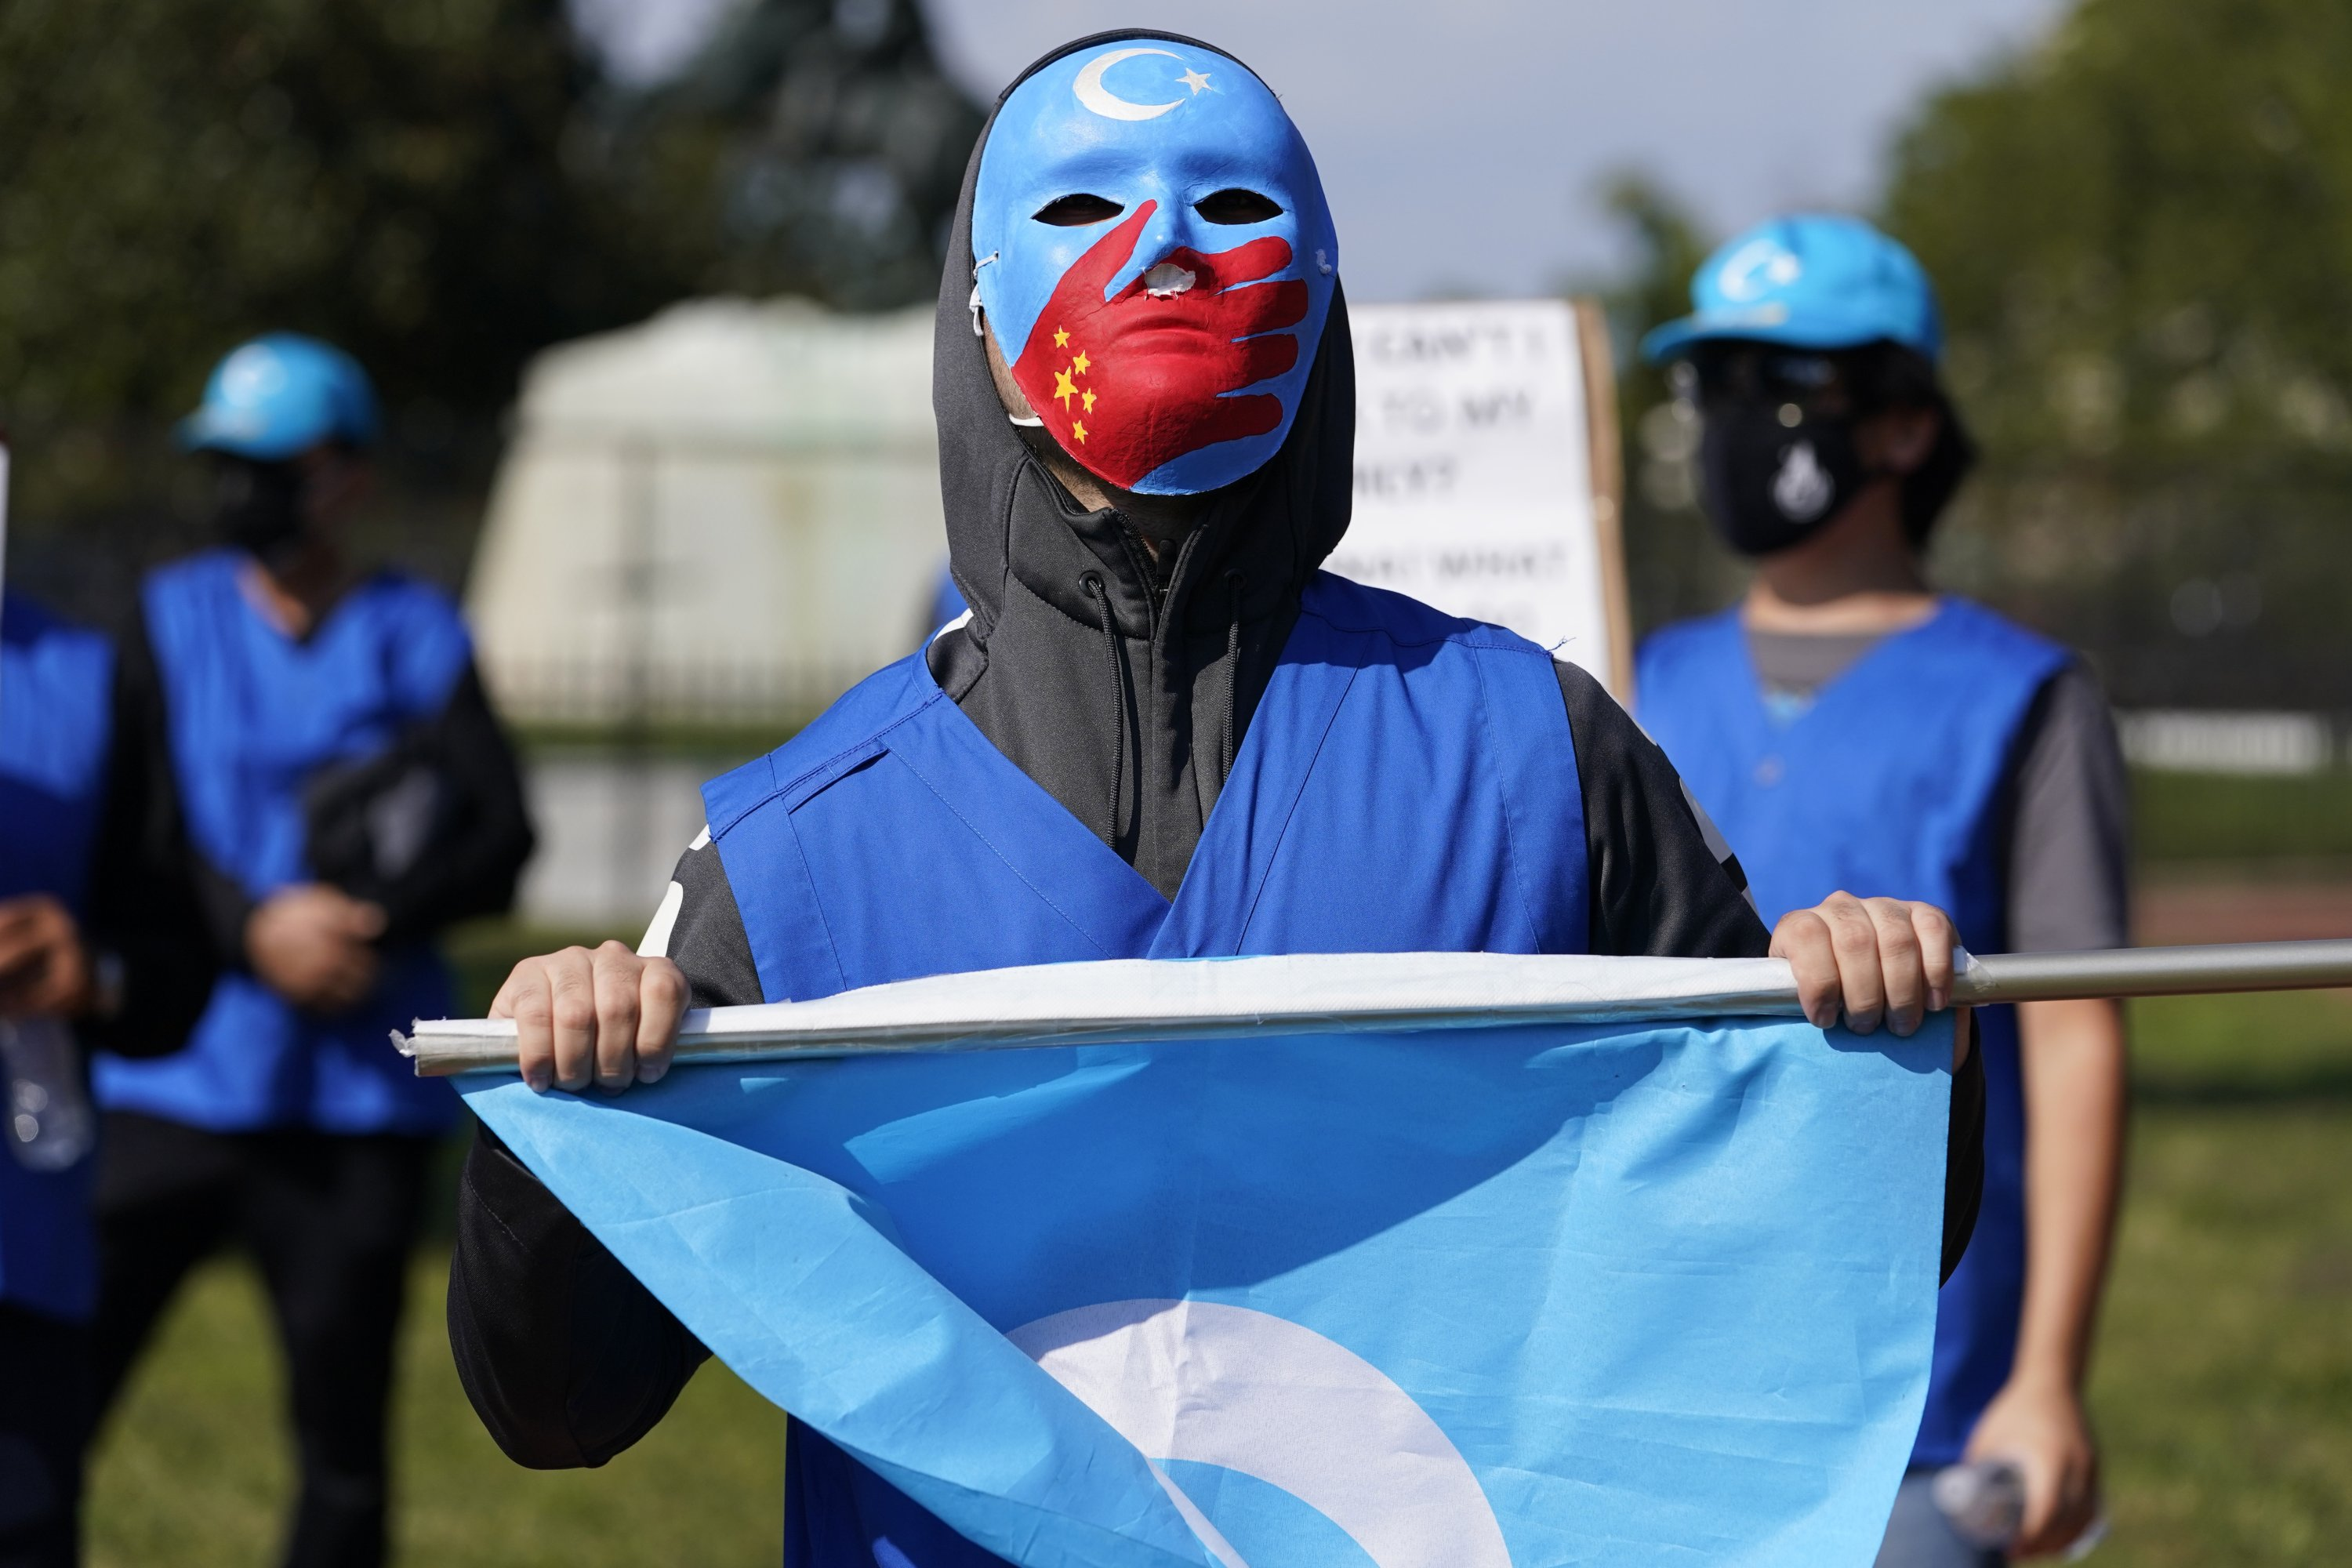 A man wears a mask to support China's Uighur minority, in front of the White House, Washington, D.C., U.S., Oct. 1, 2020. (AP Photo)